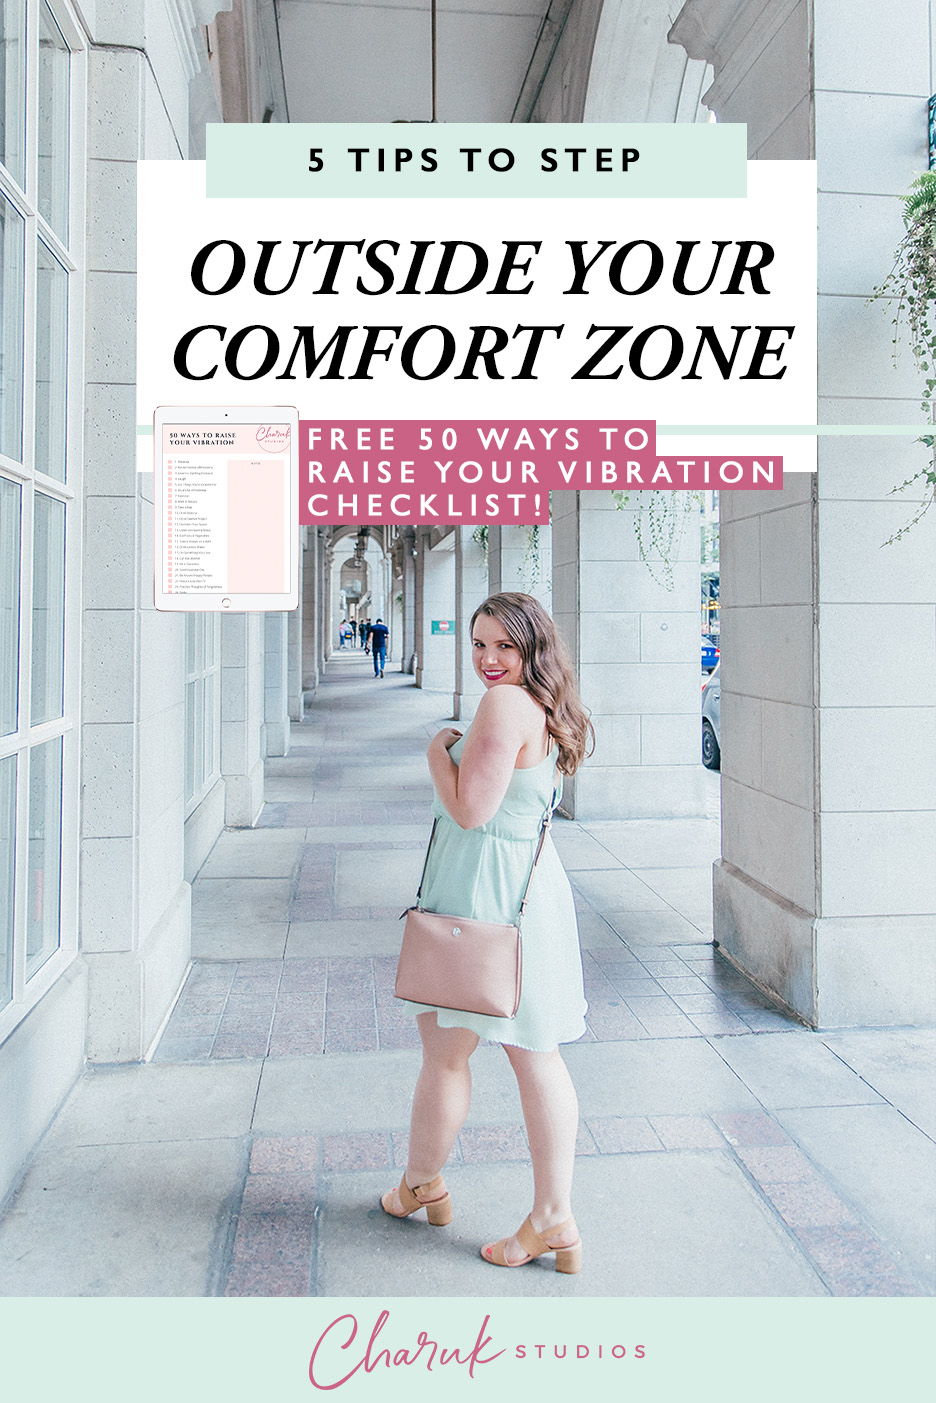 5 Tips to Step Outside Your Comfort Zone by Charuk Studios